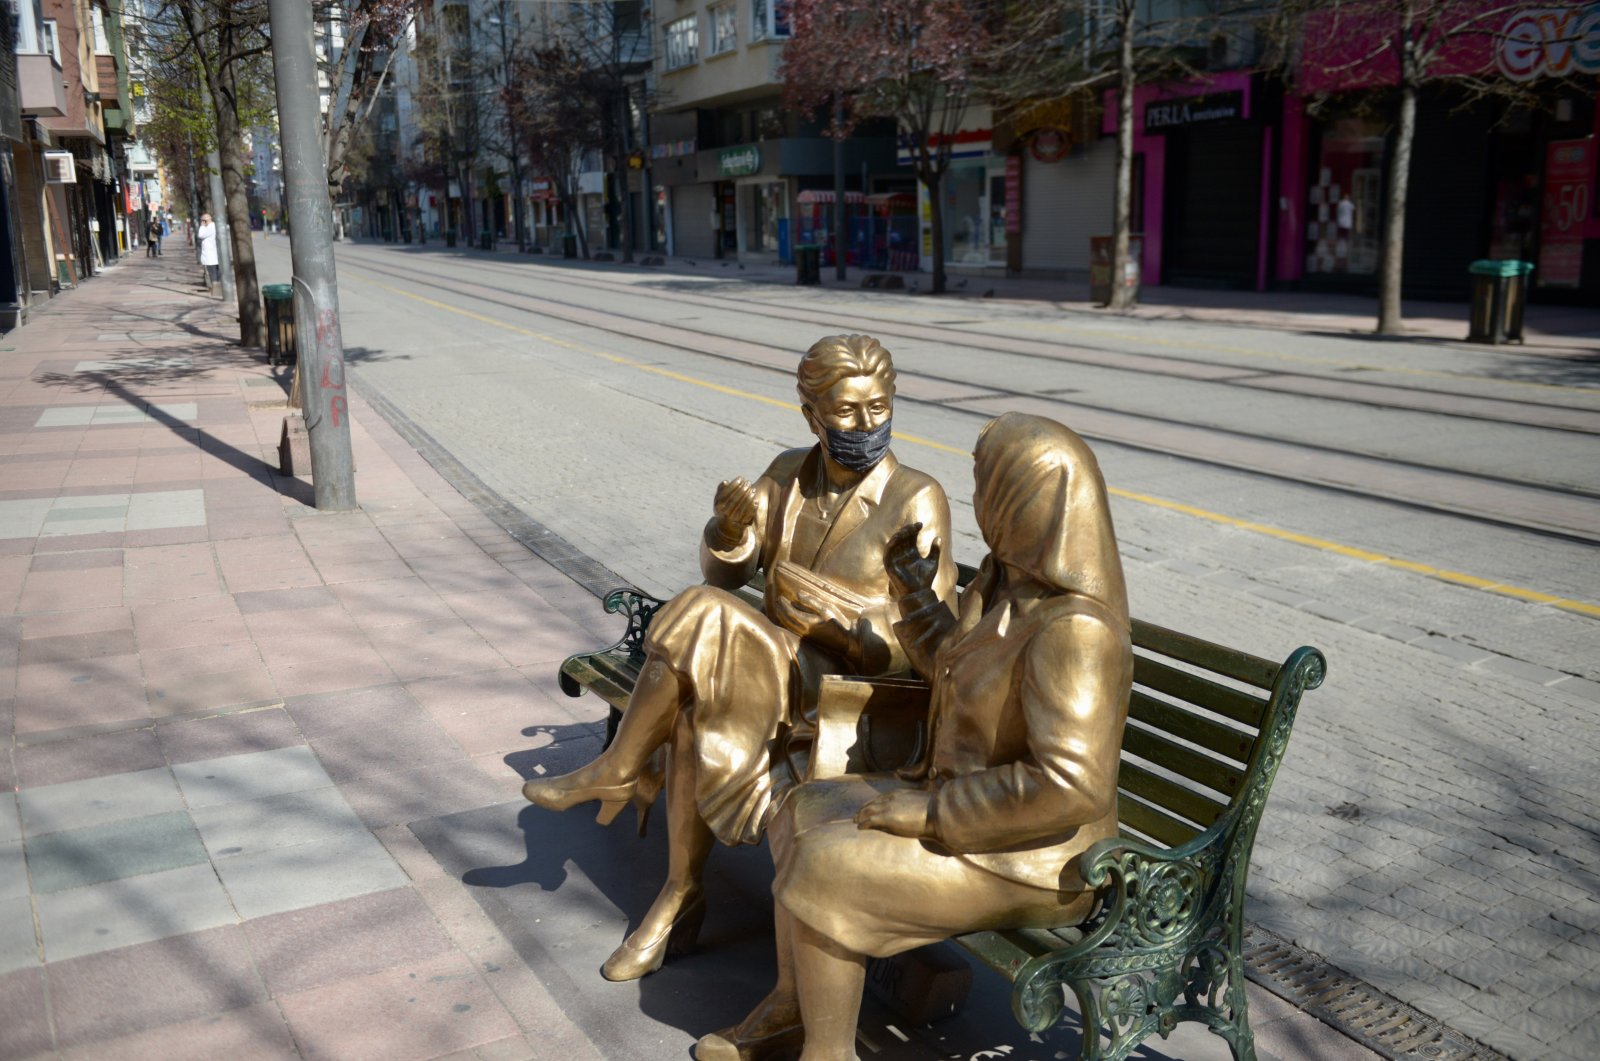 A statue of two women chatting on a bench, one of whom is wearing a face mask, is seen in Turkey's central Eskişehir province, April 12, 2020. (AA Photo)